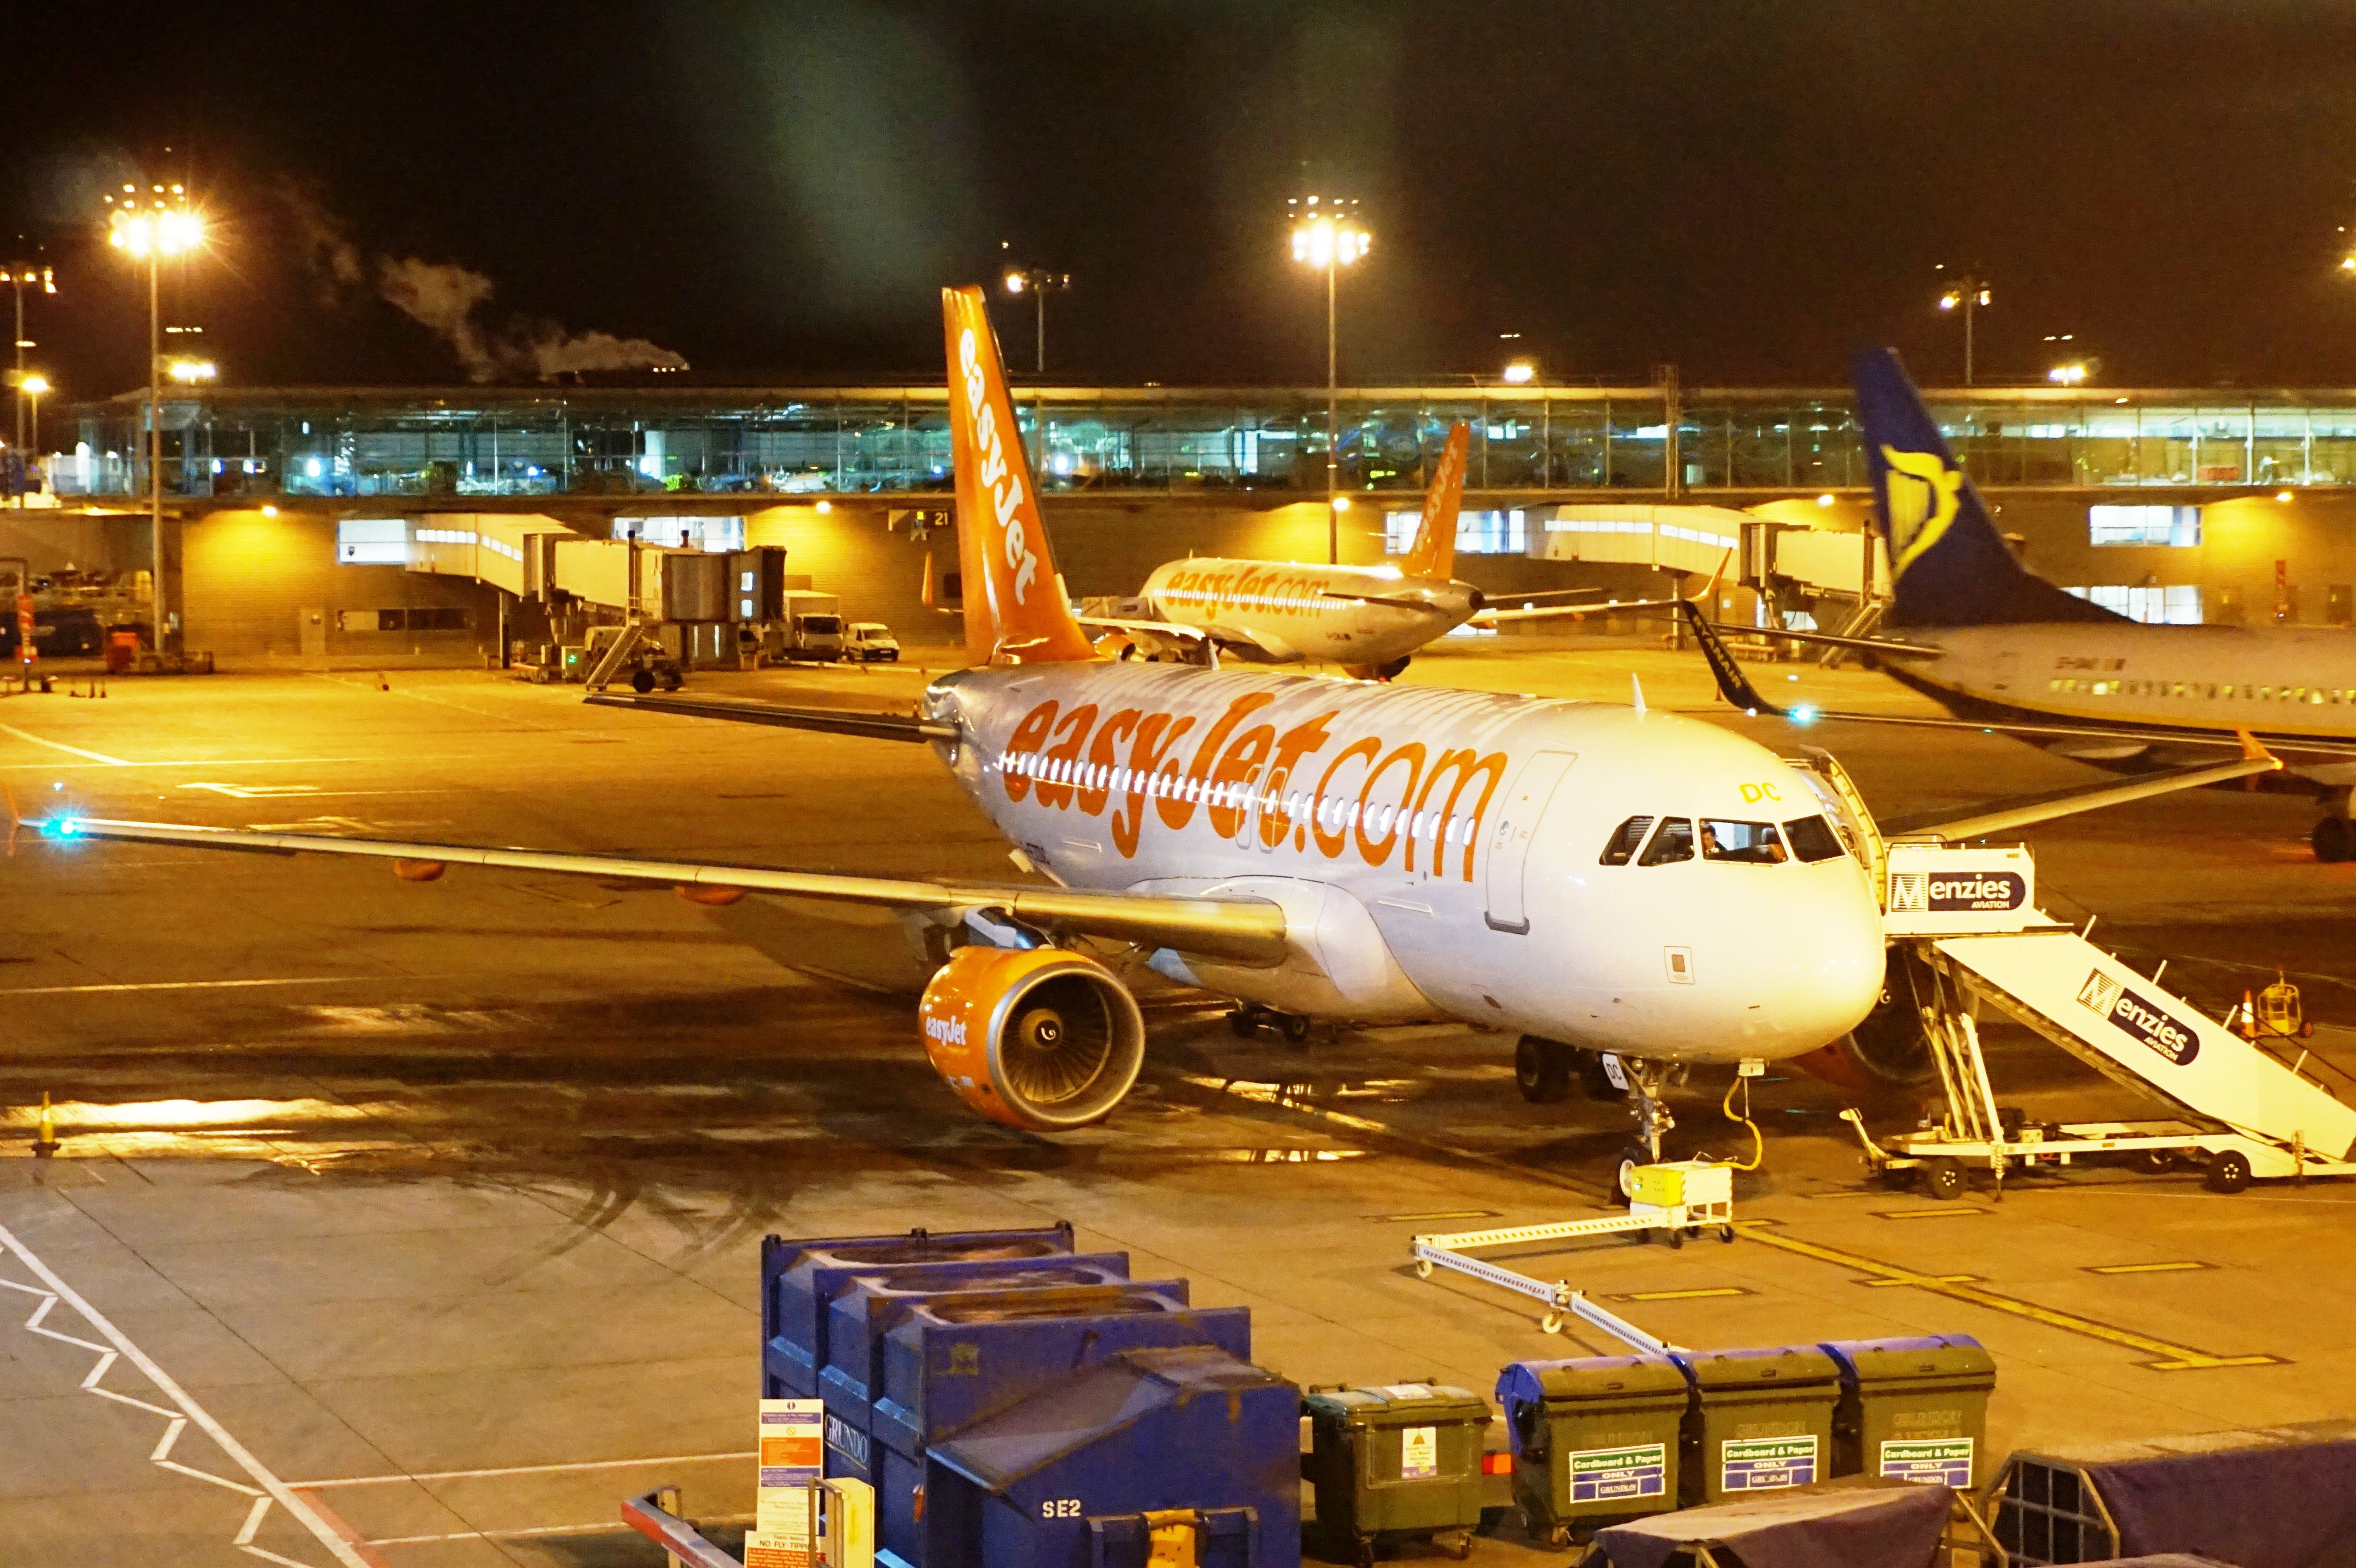 Easyjet A319 At London Stansted Airport Easy Jet London Stansted Airport Let S Have Fun